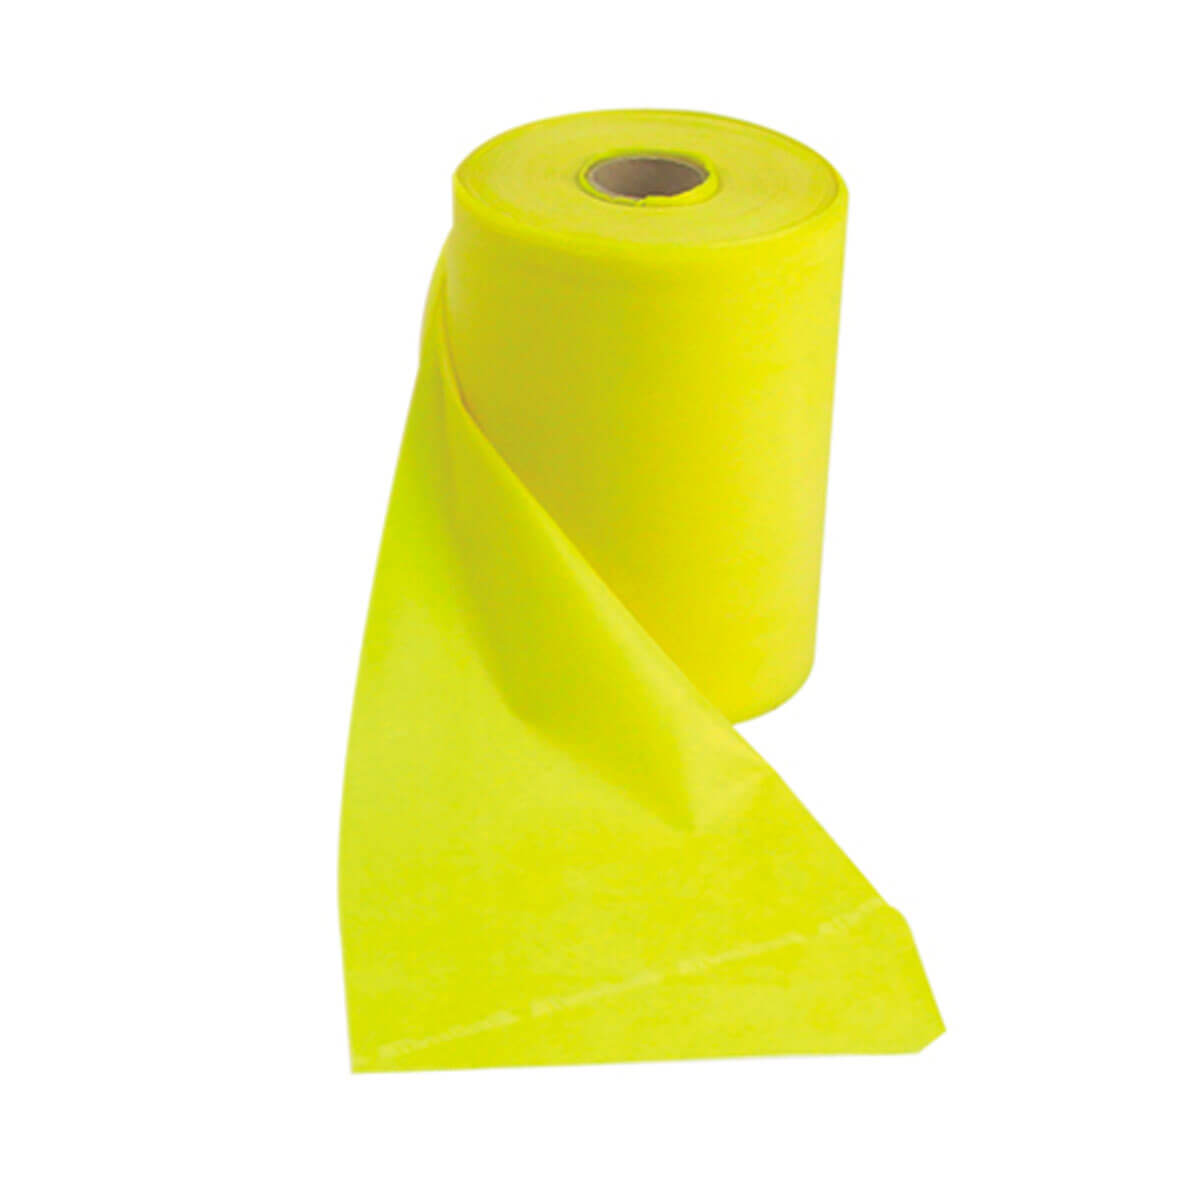 TheraBand® Latex-Free Resistance Exercise Band - 50 Yard Roll yellow